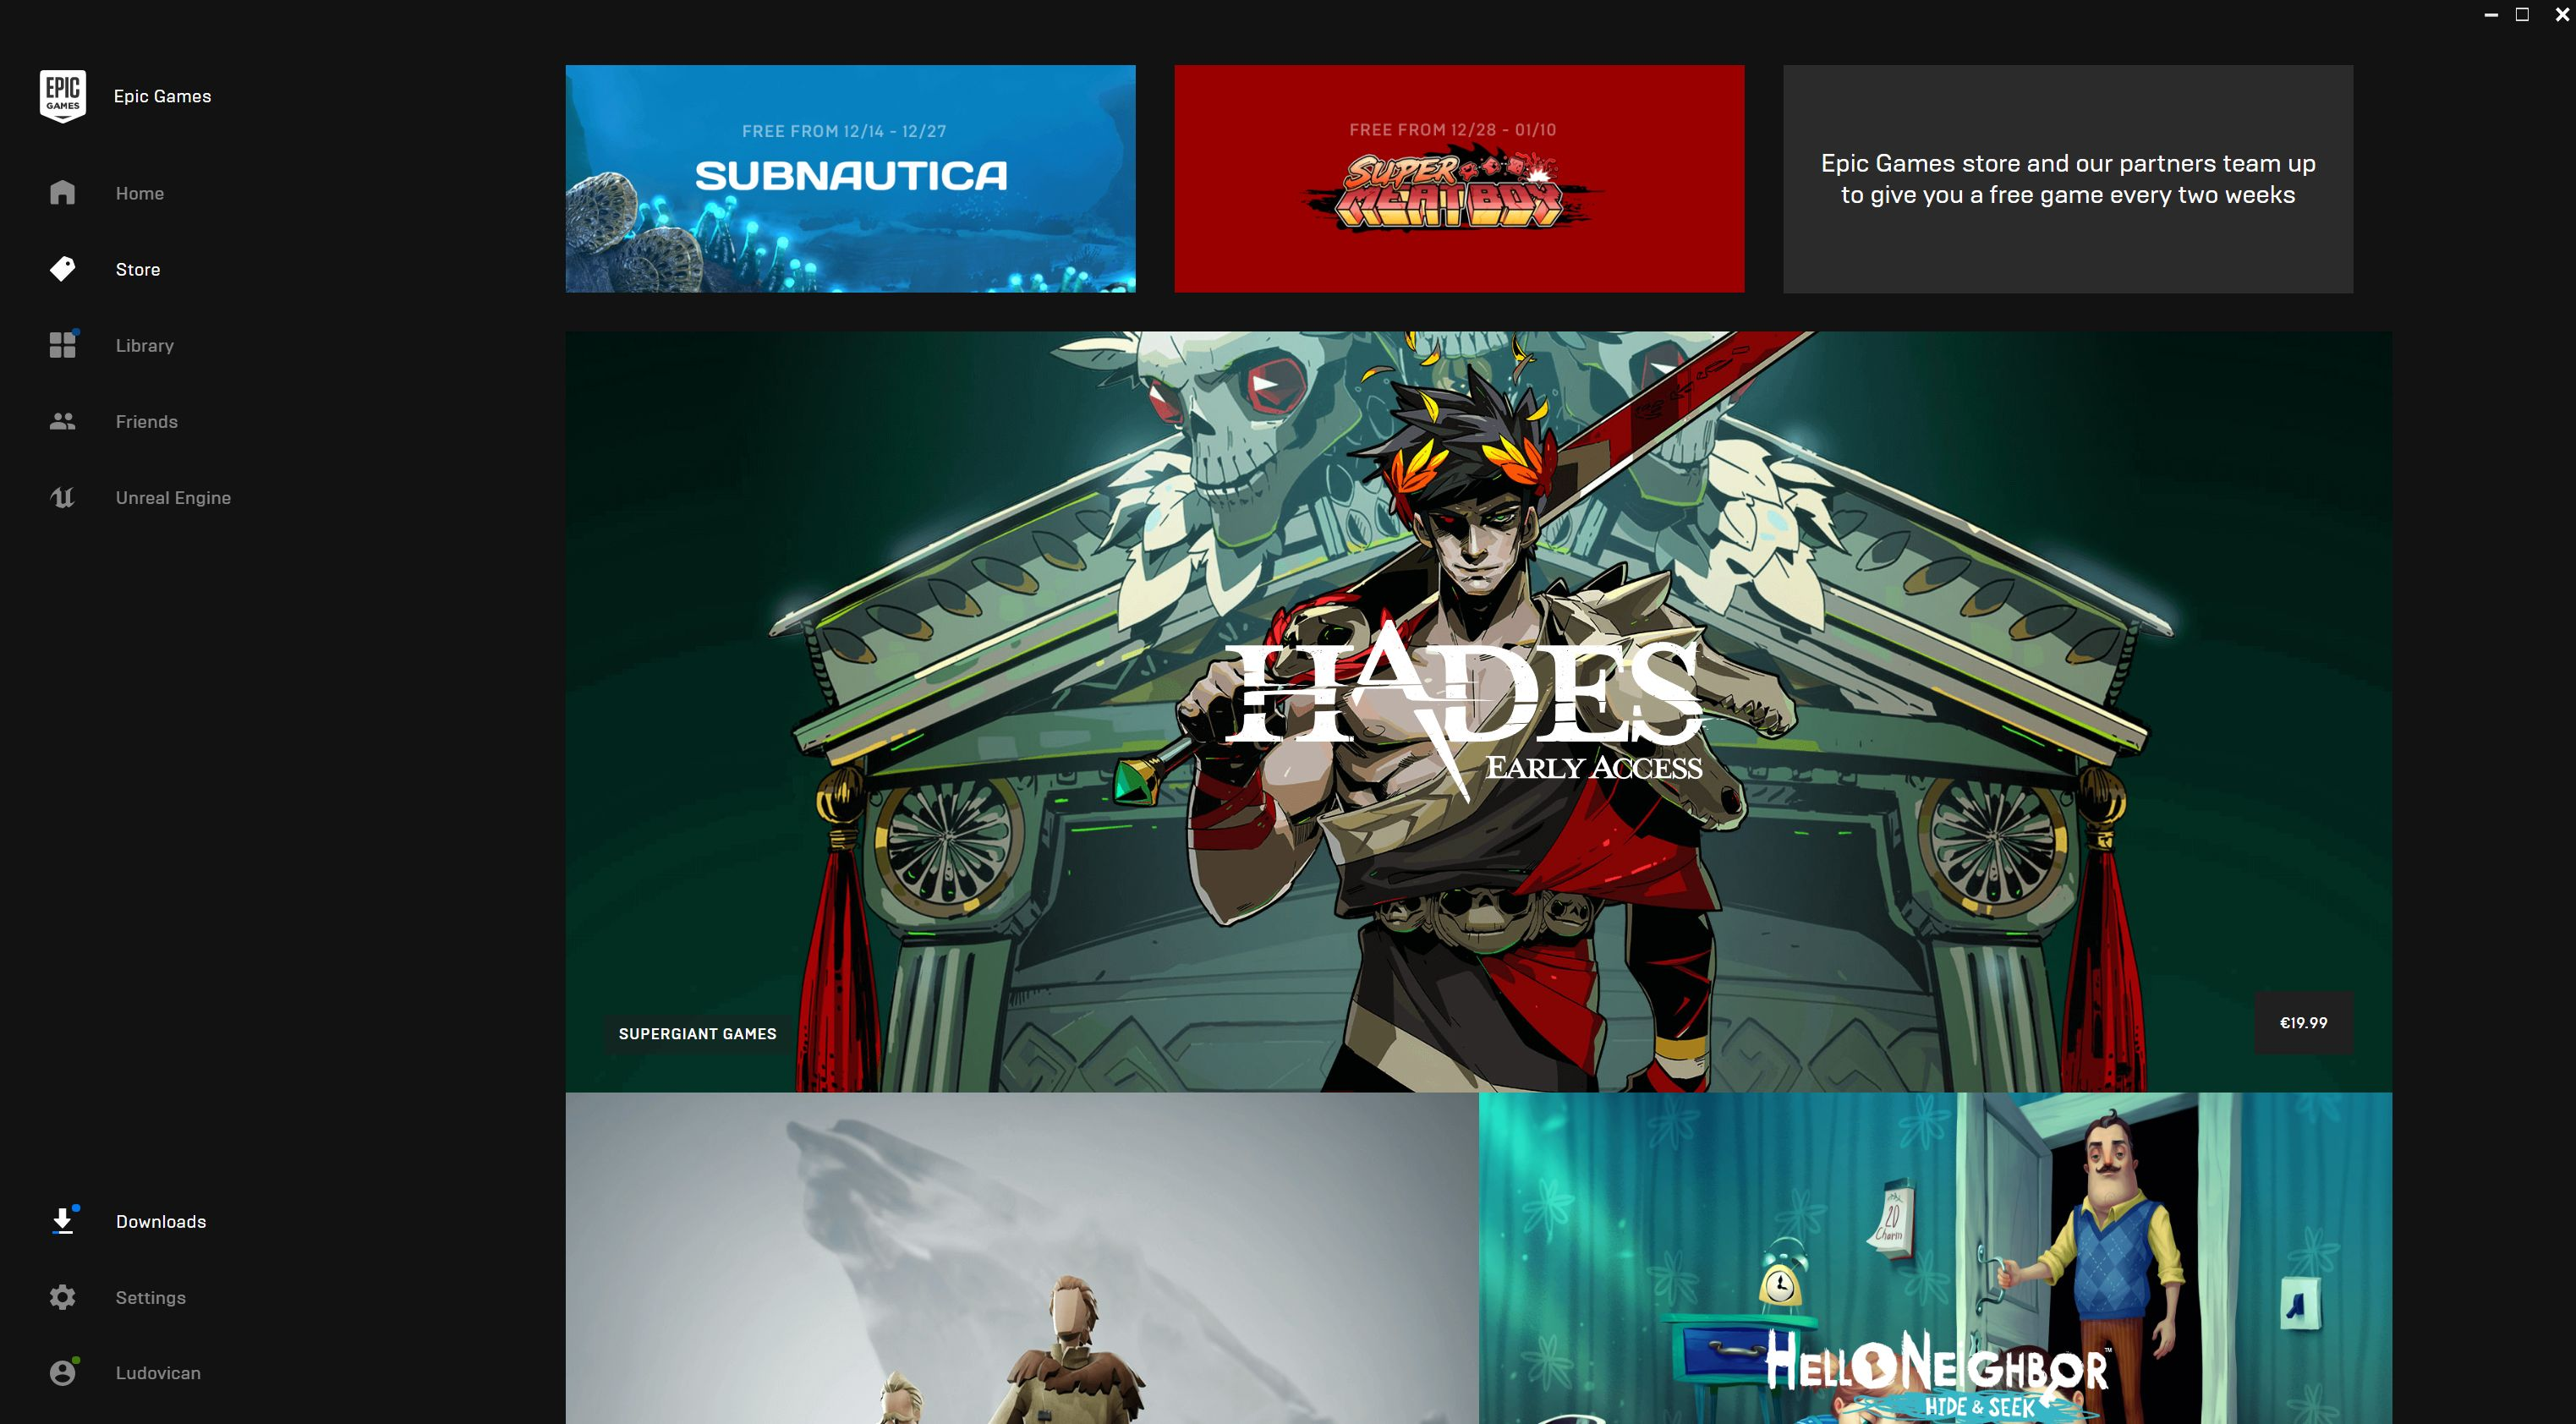 The Epic Games Store is slick, but has some key flaws right now | PC